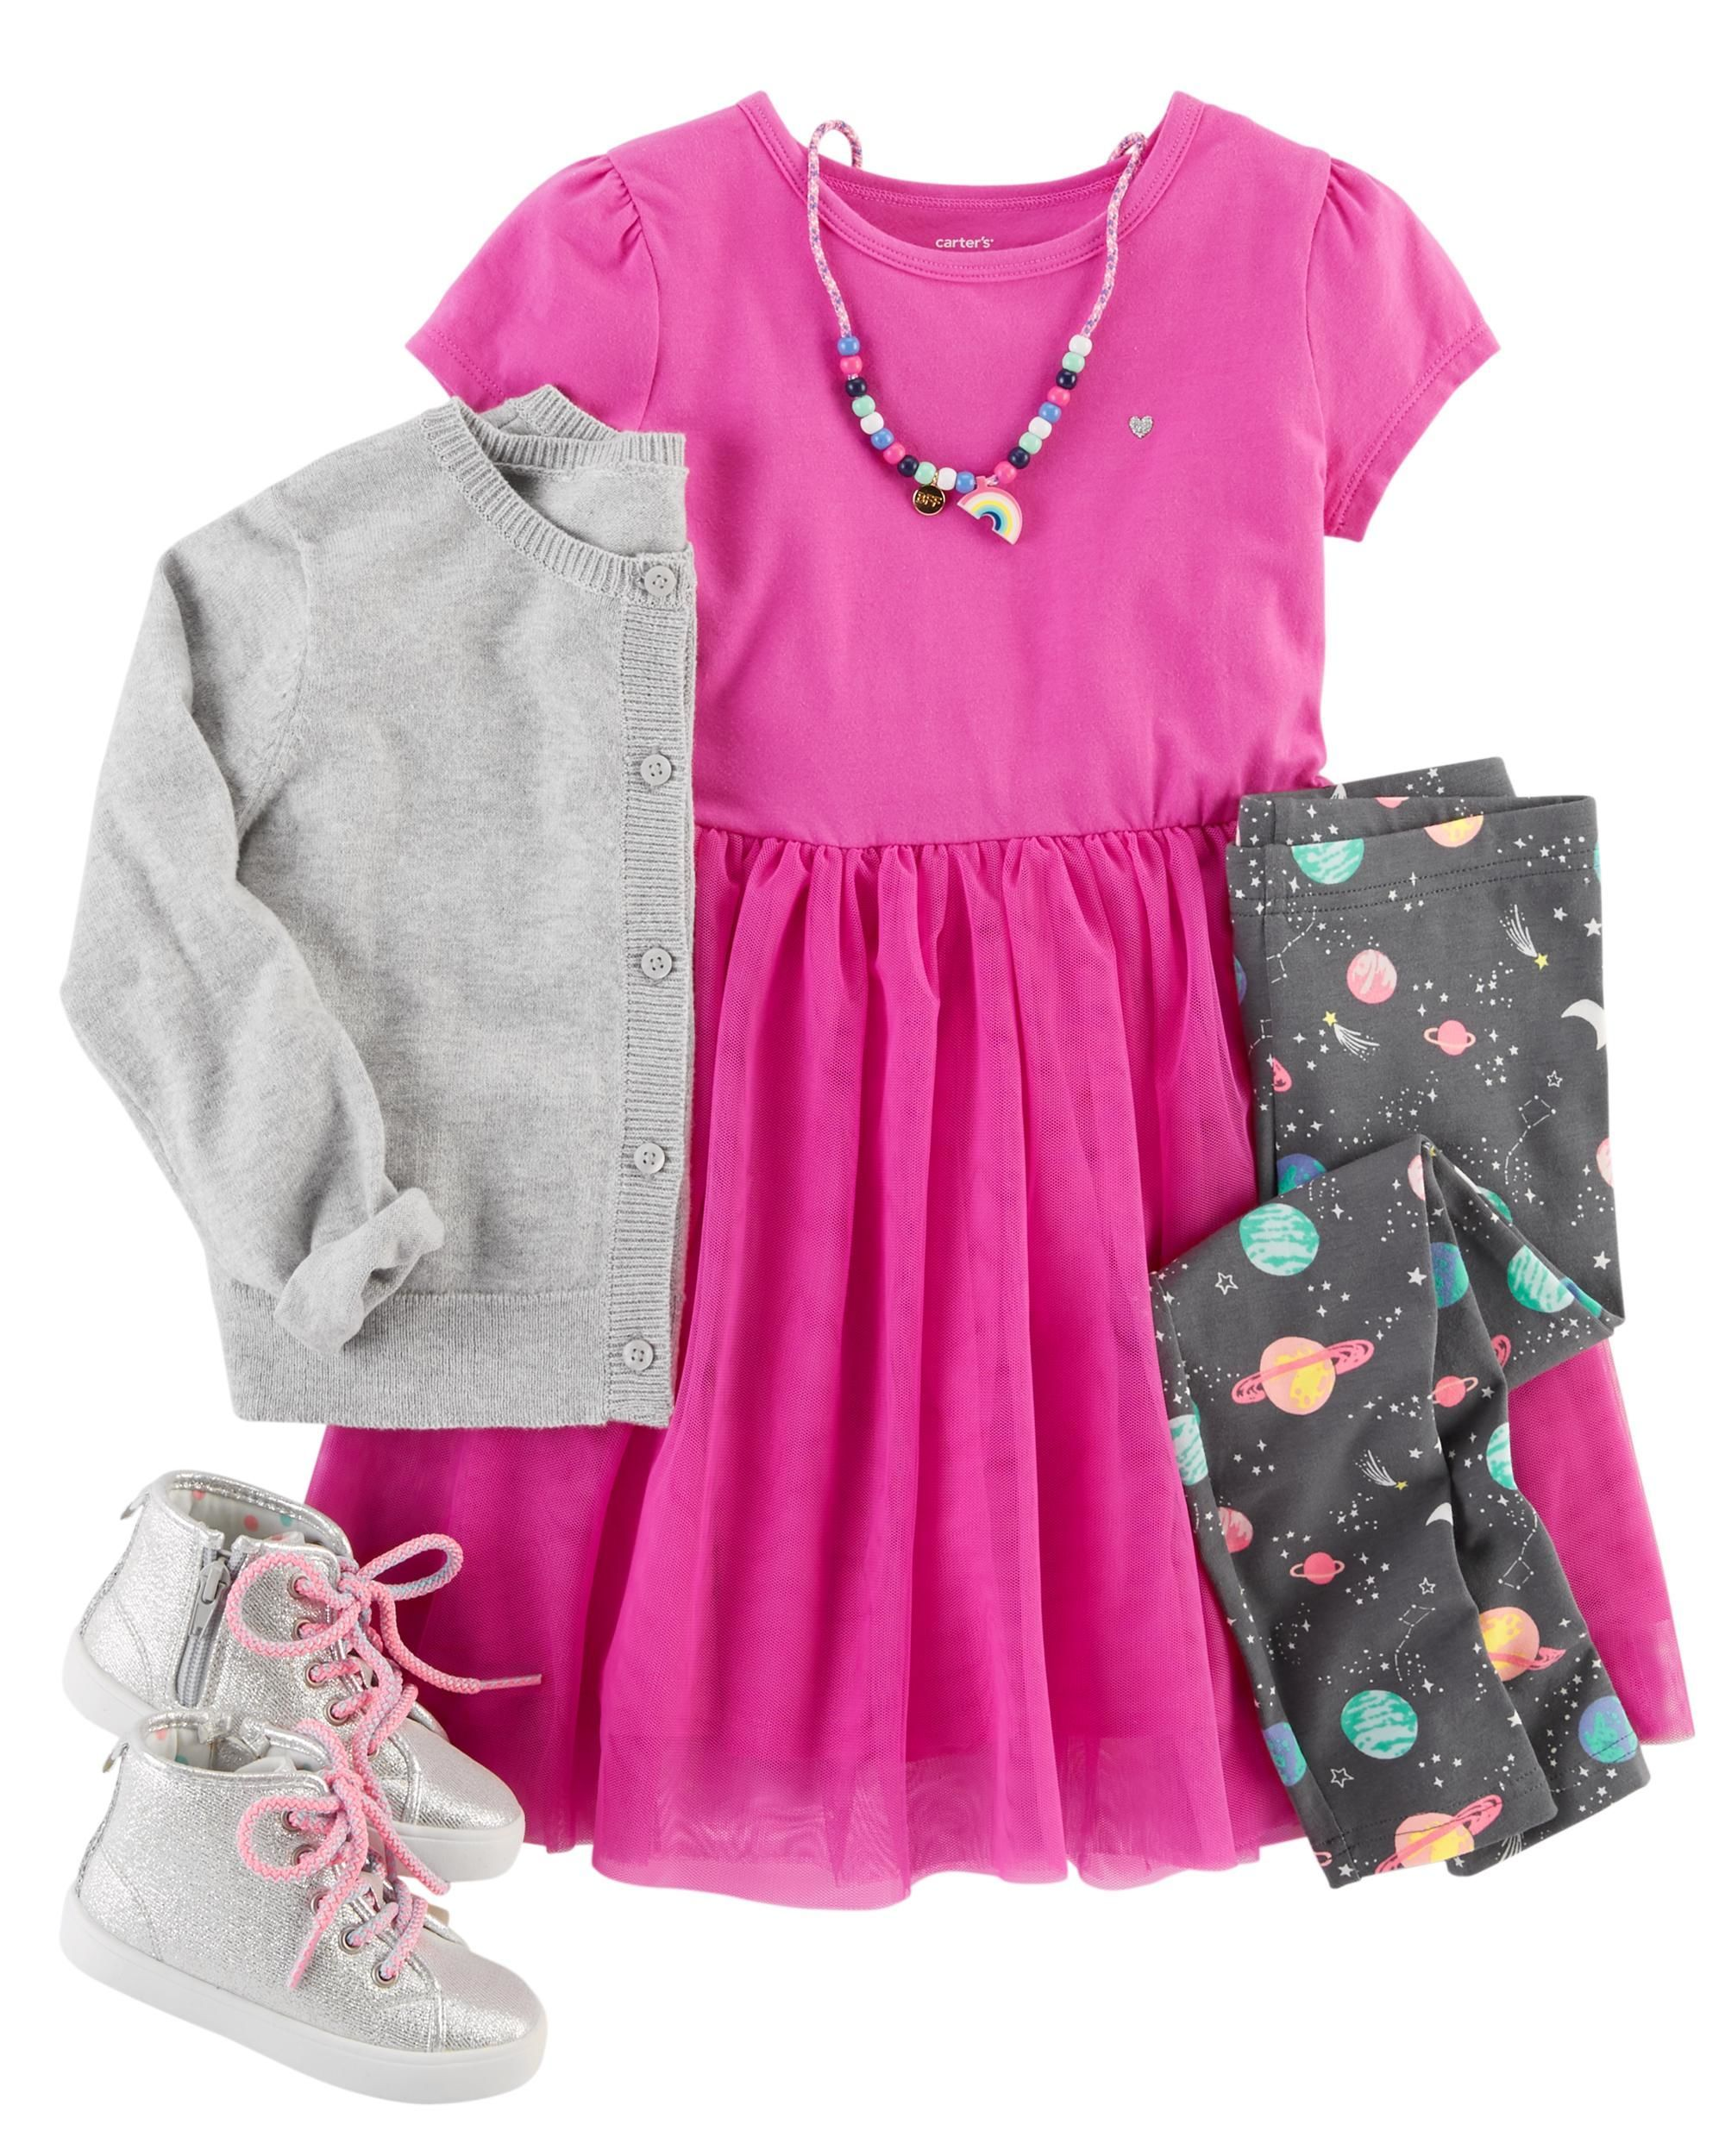 7096fcb4f46c Just in time for spring, this sweet outfit features a tutu jersey dress,  out-of-this-world space leggings and a knit bow cardigan. Pair with silver  high top ...